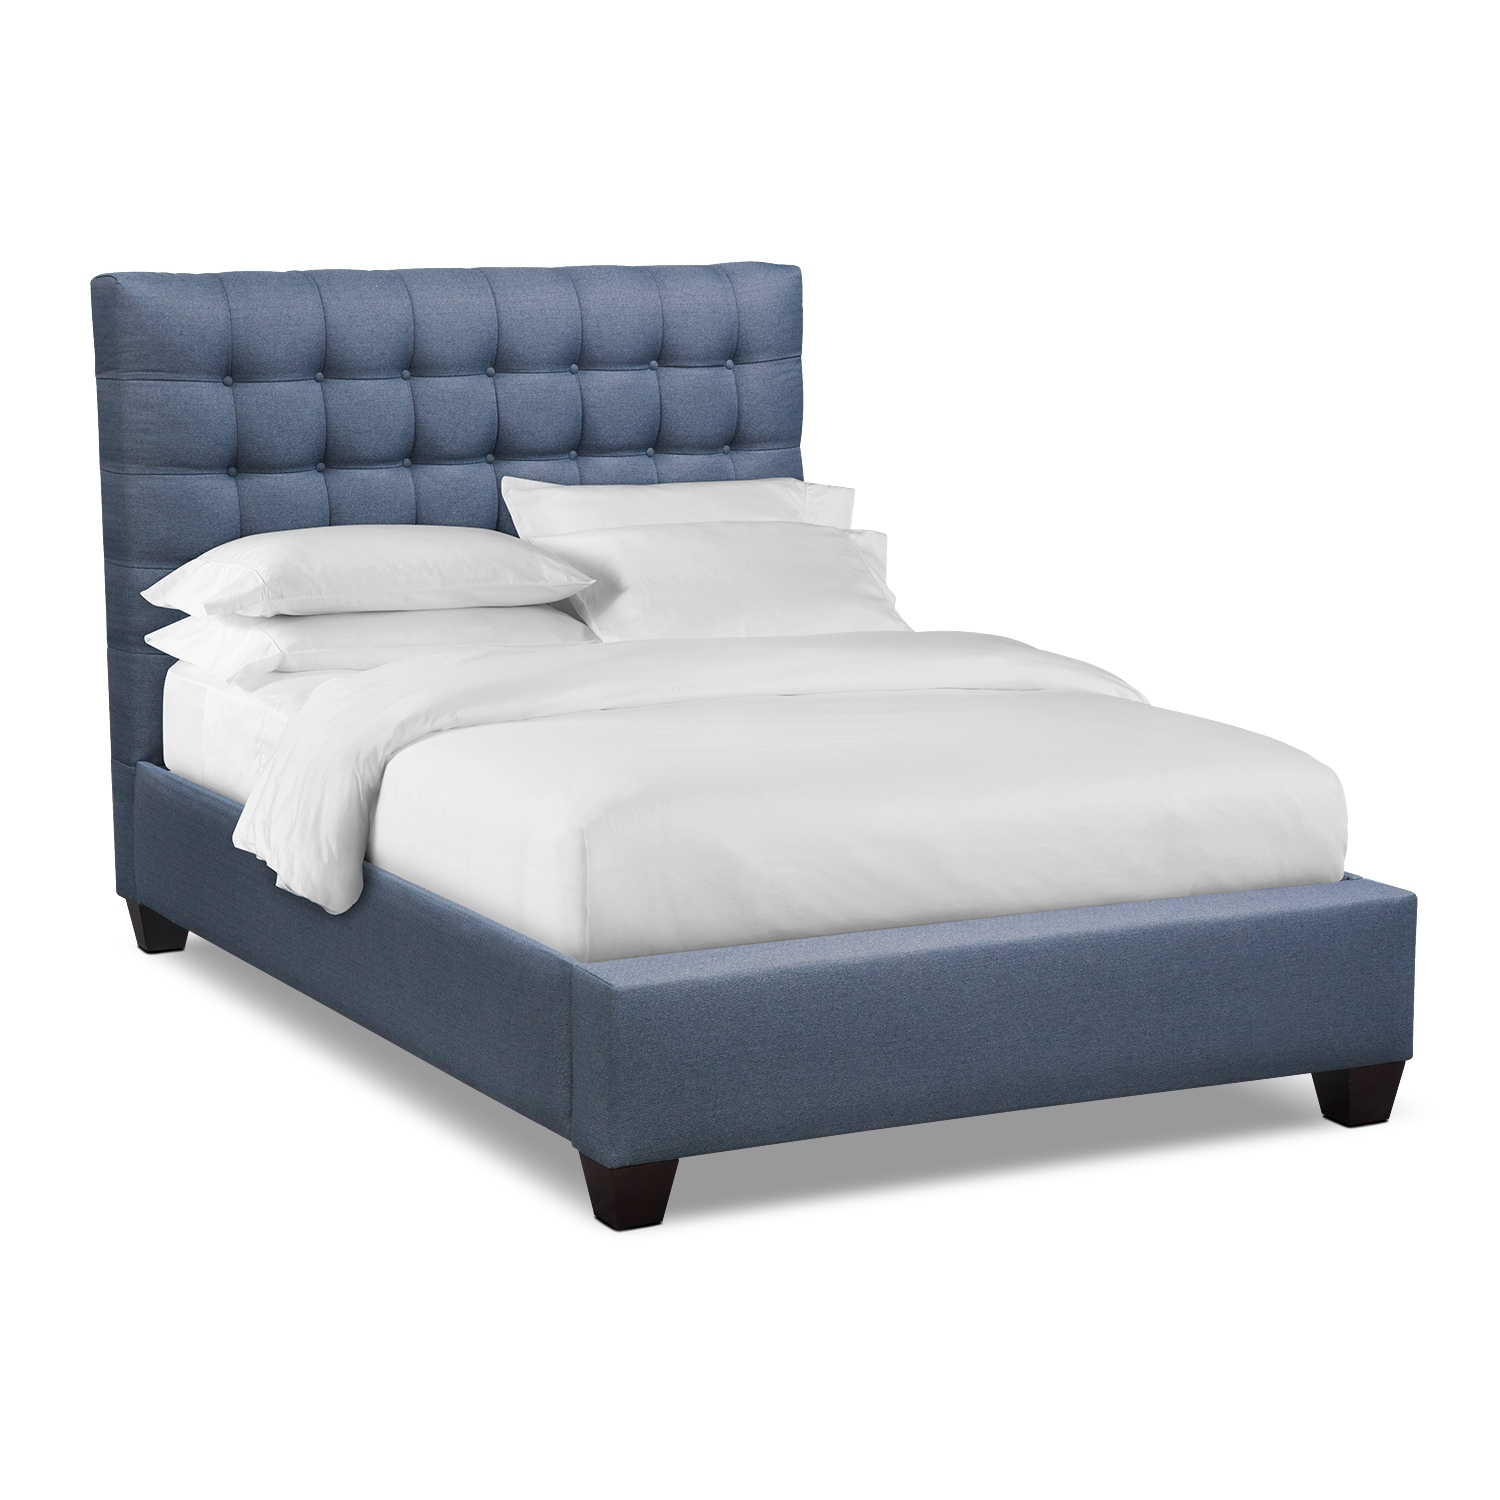 Kylie King Upholstered Bed - Blue